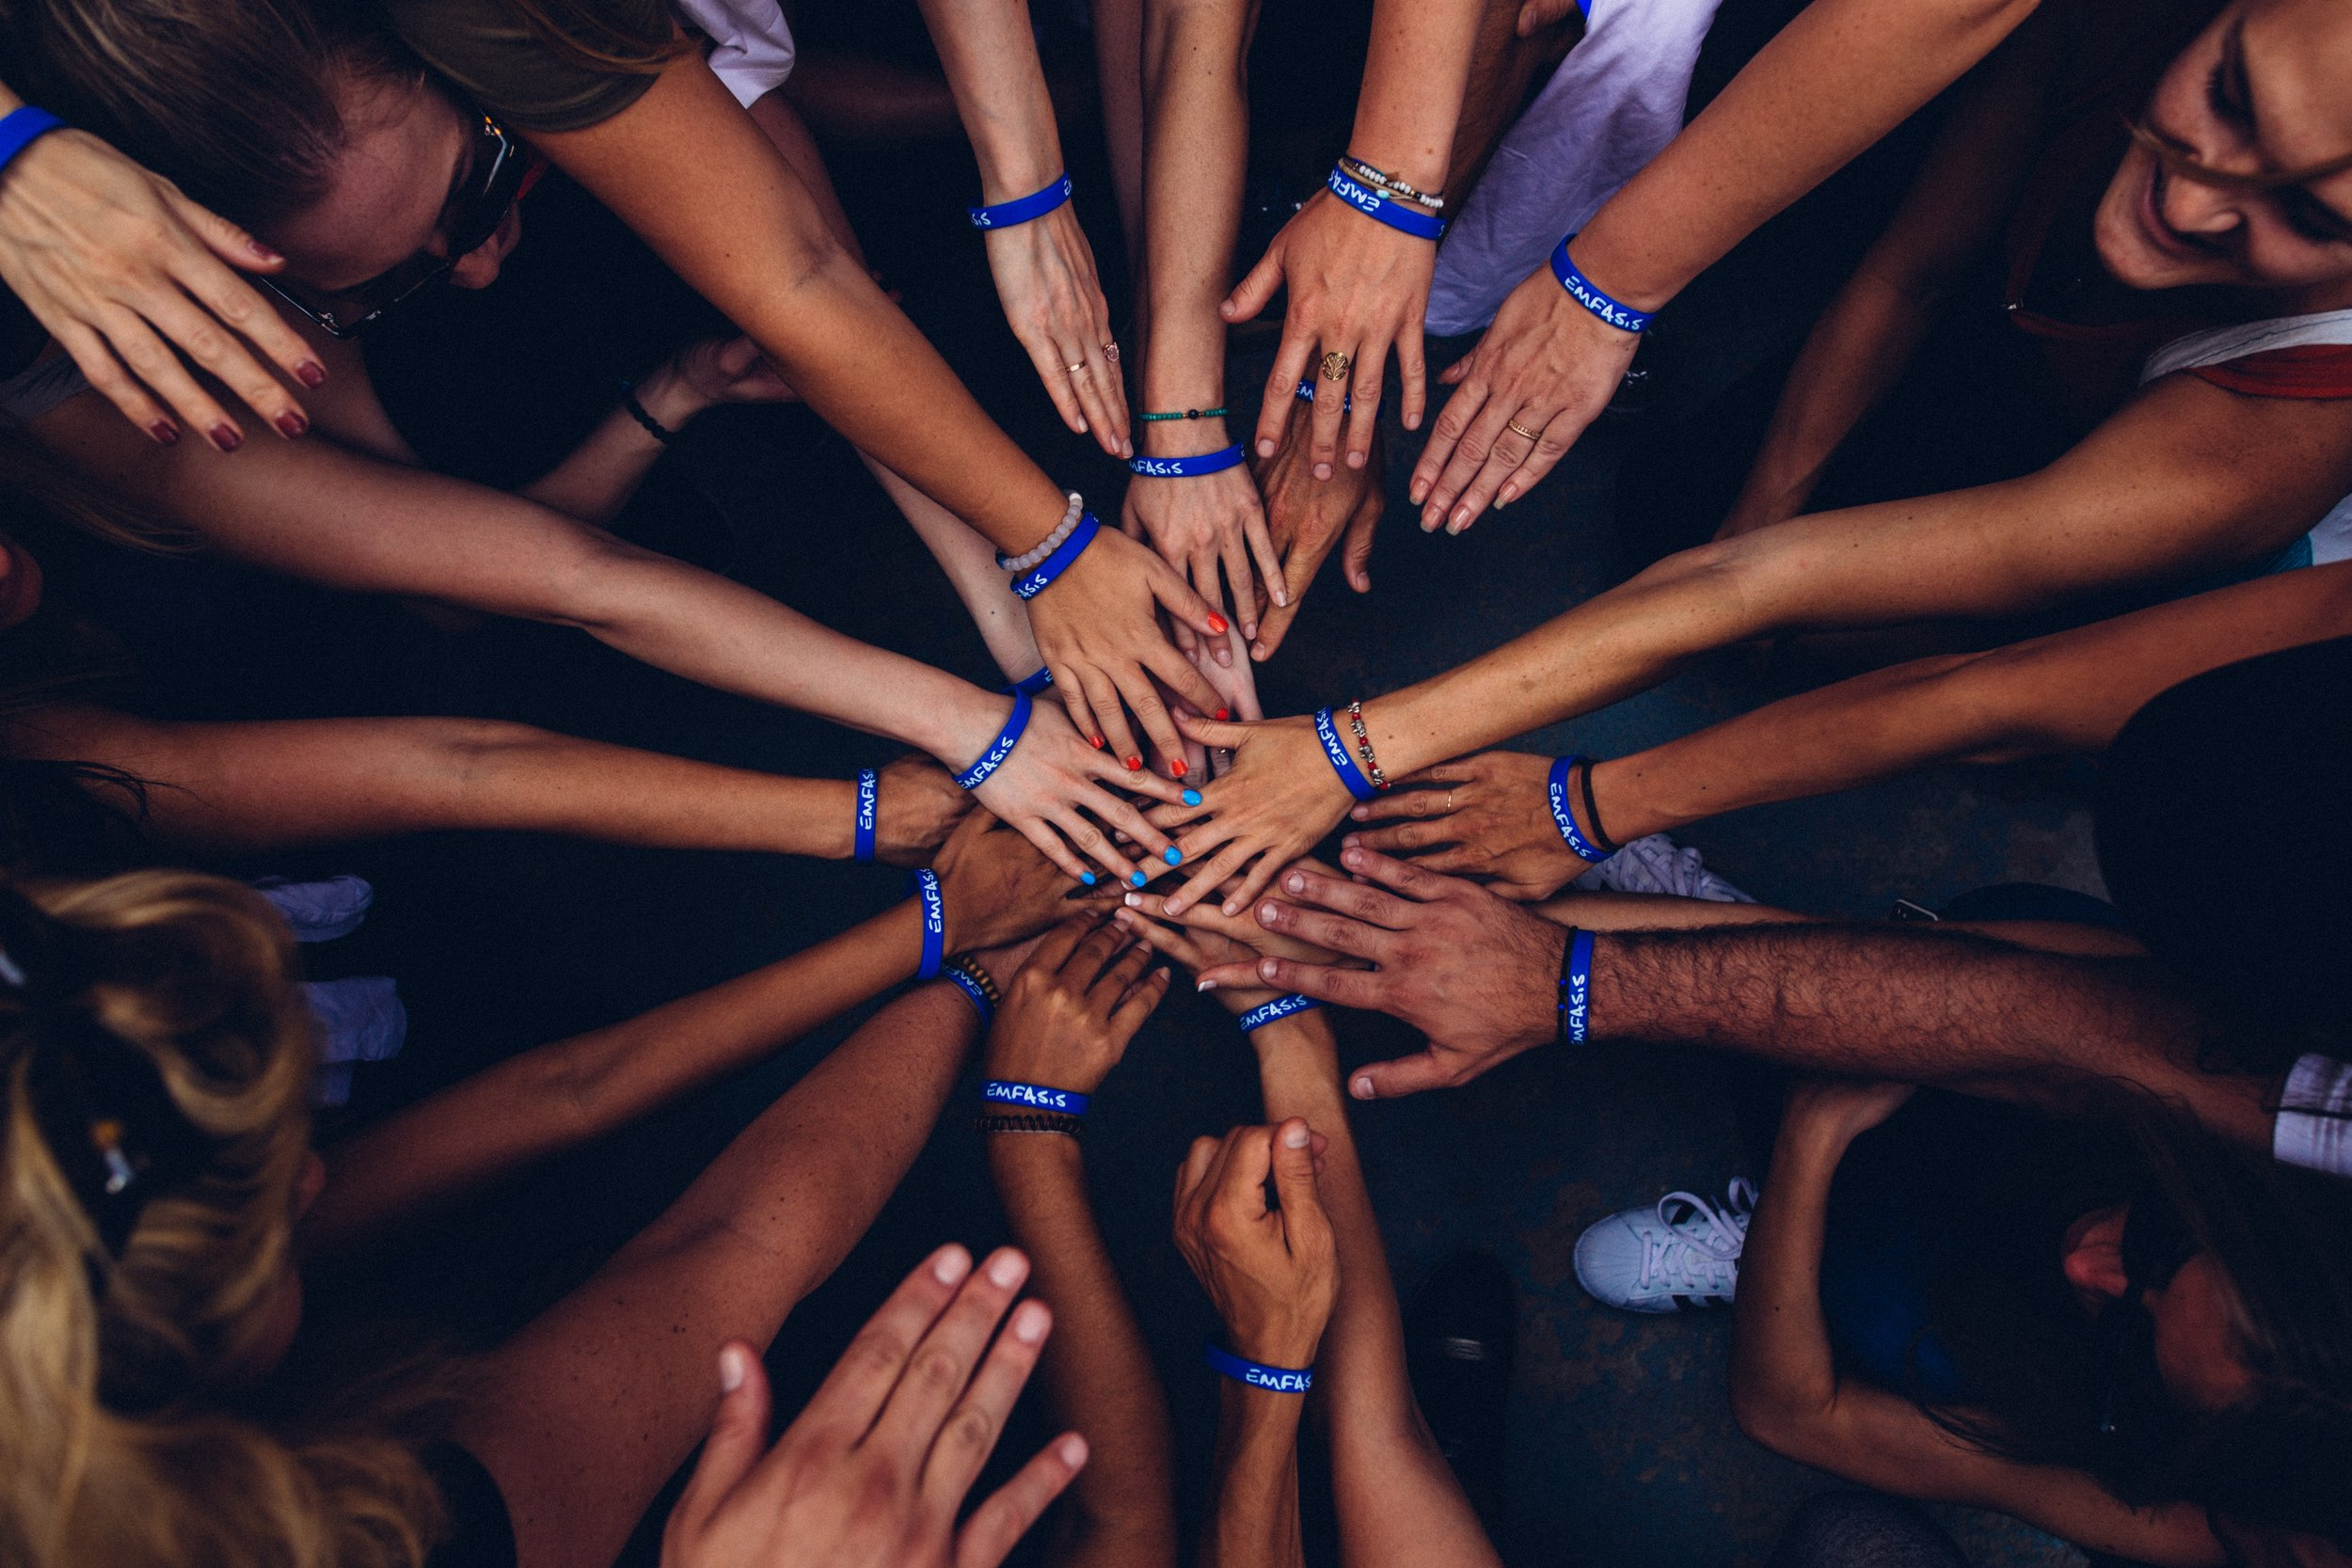 Unite - Unlikely alliances are formed by bringing together individuals, organizations, and elected officials to root for a collective goal: to open hearts and minds.